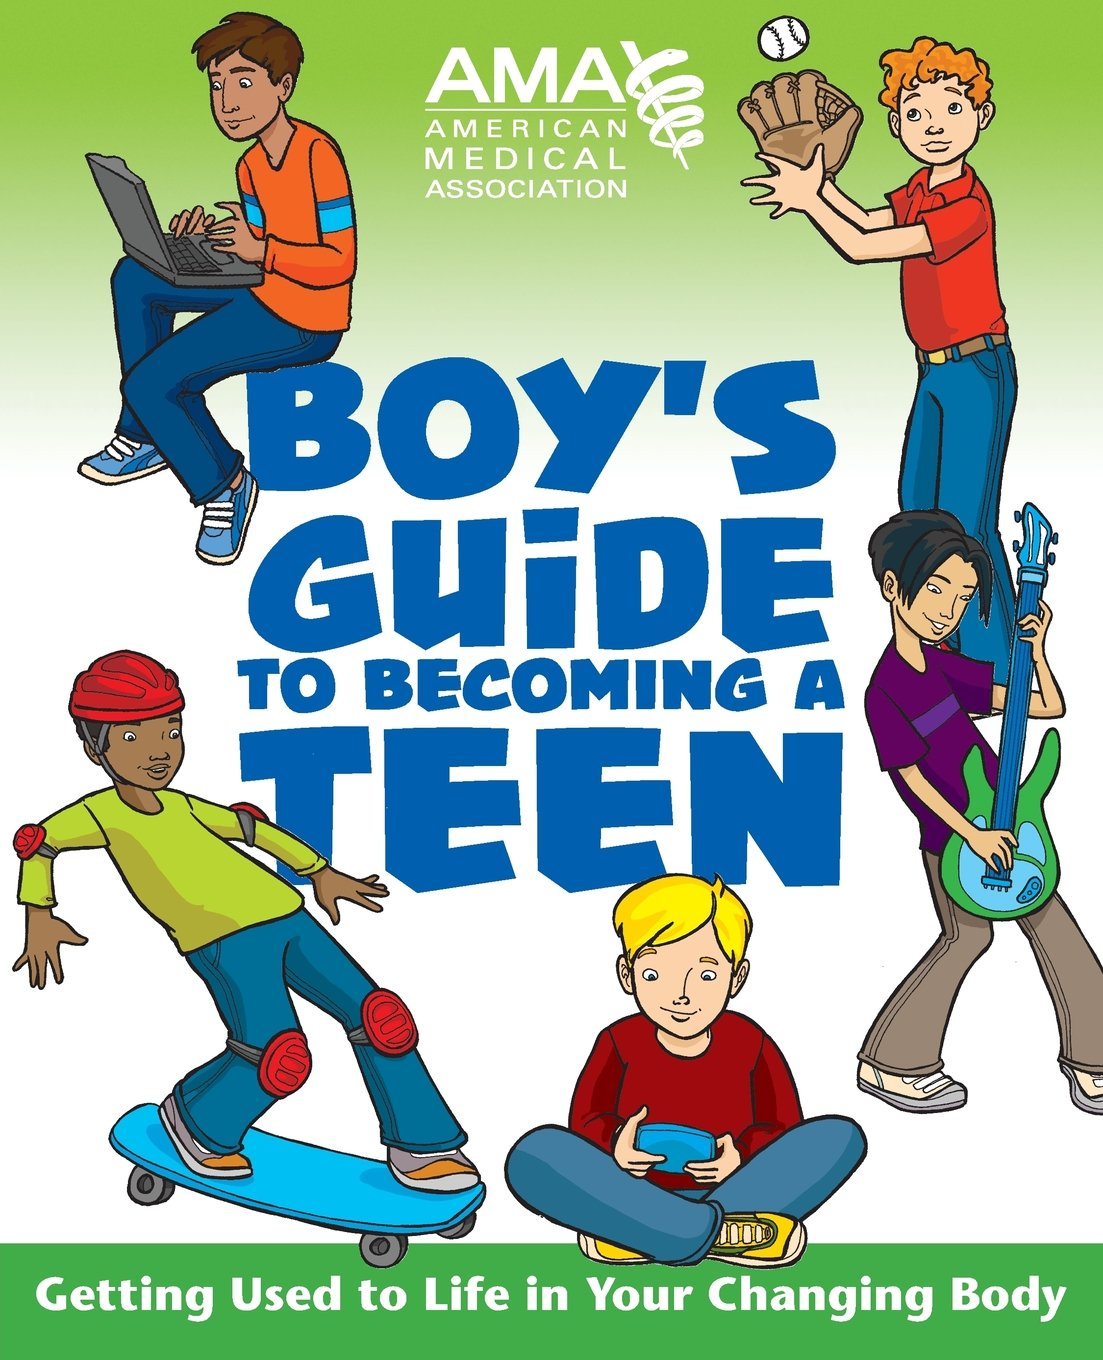 Amazon.com: American Medical Association Boy's Guide to Becoming a Teen  (9780787983437): Amy B. American Medical Association: Books